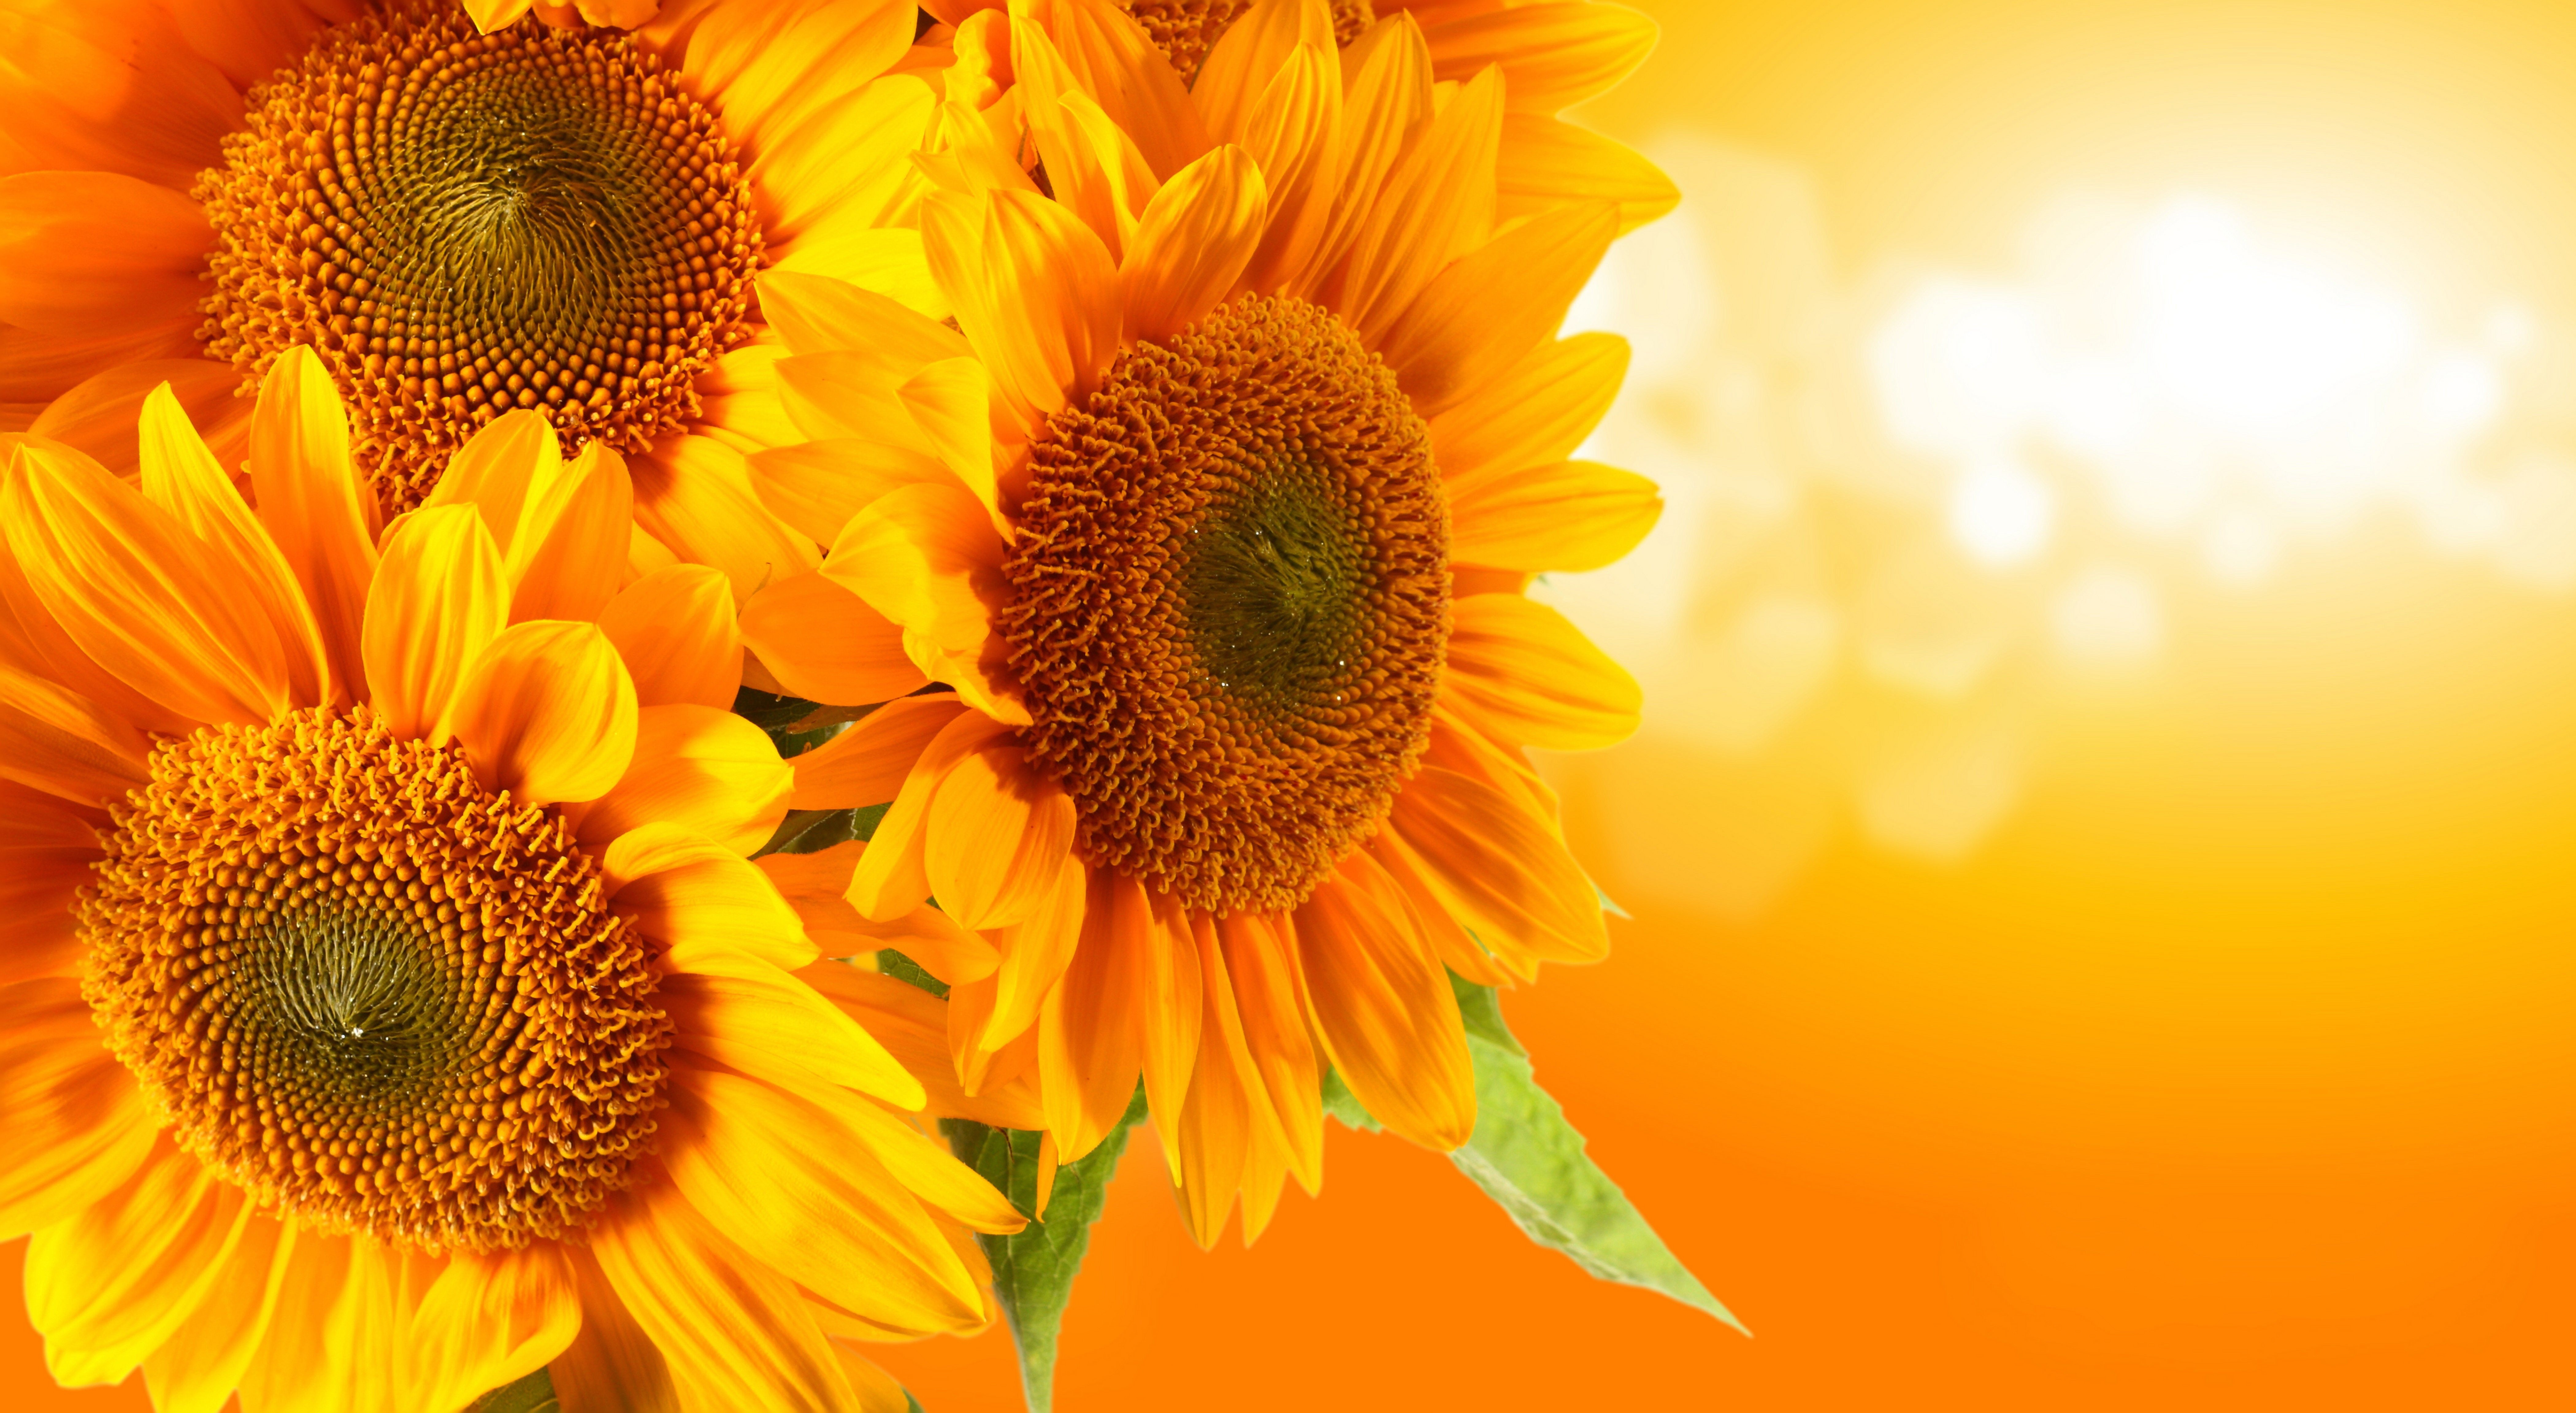 8400x4608 free wallpaper and screensavers for sunflower